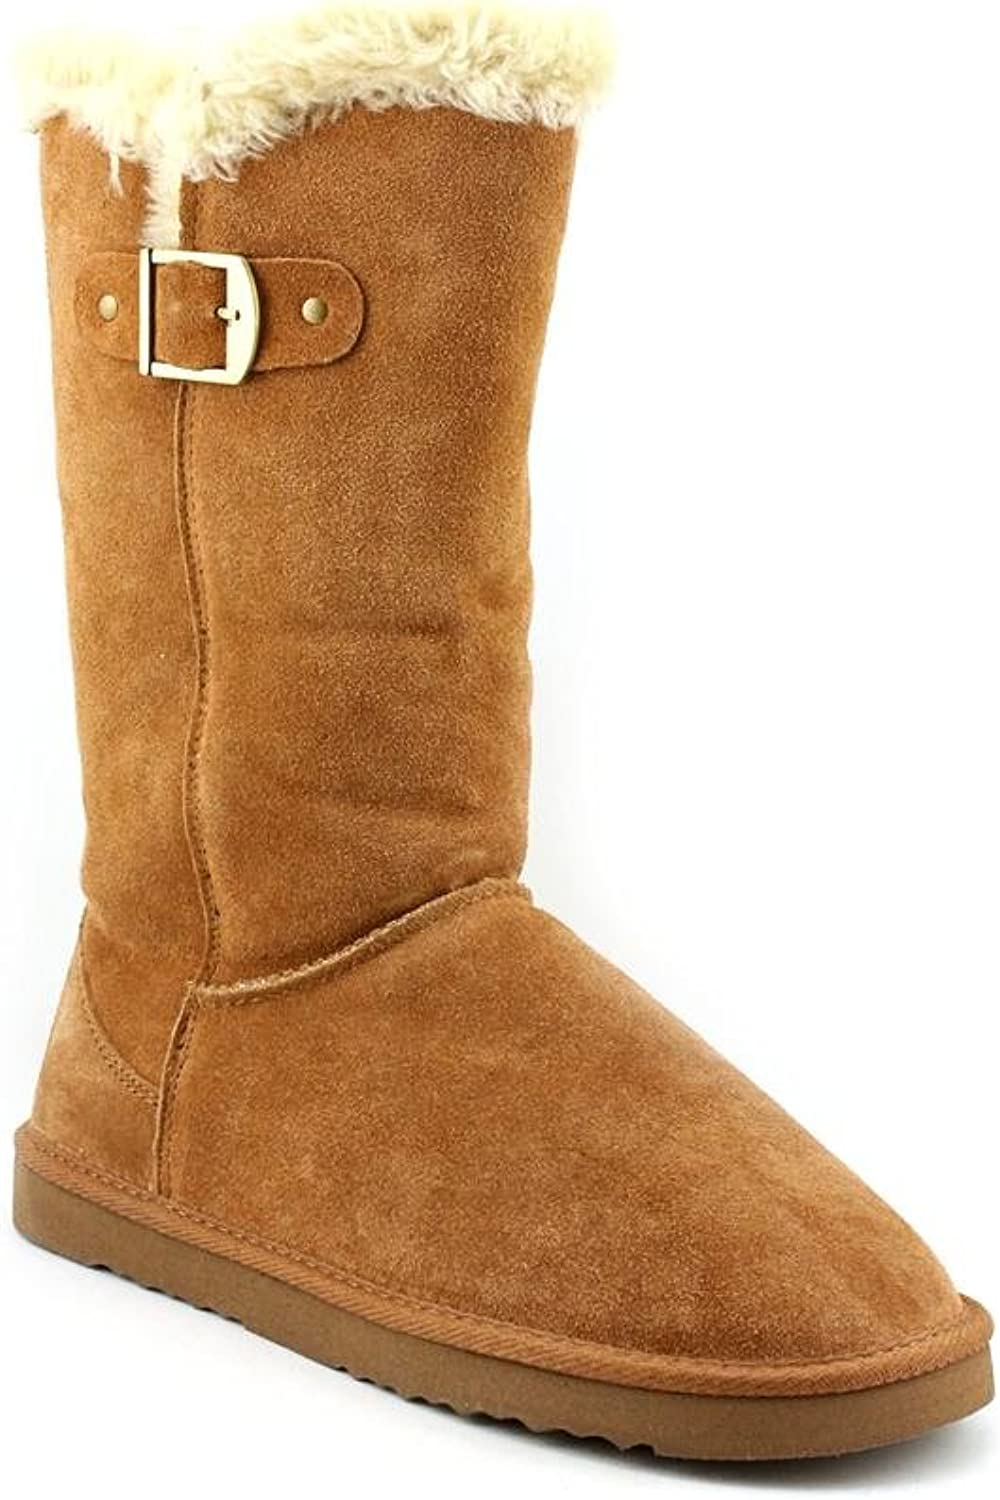 Style & Co Bode Womens Size 6 Tan Suede Fashion Mid-calf Boots